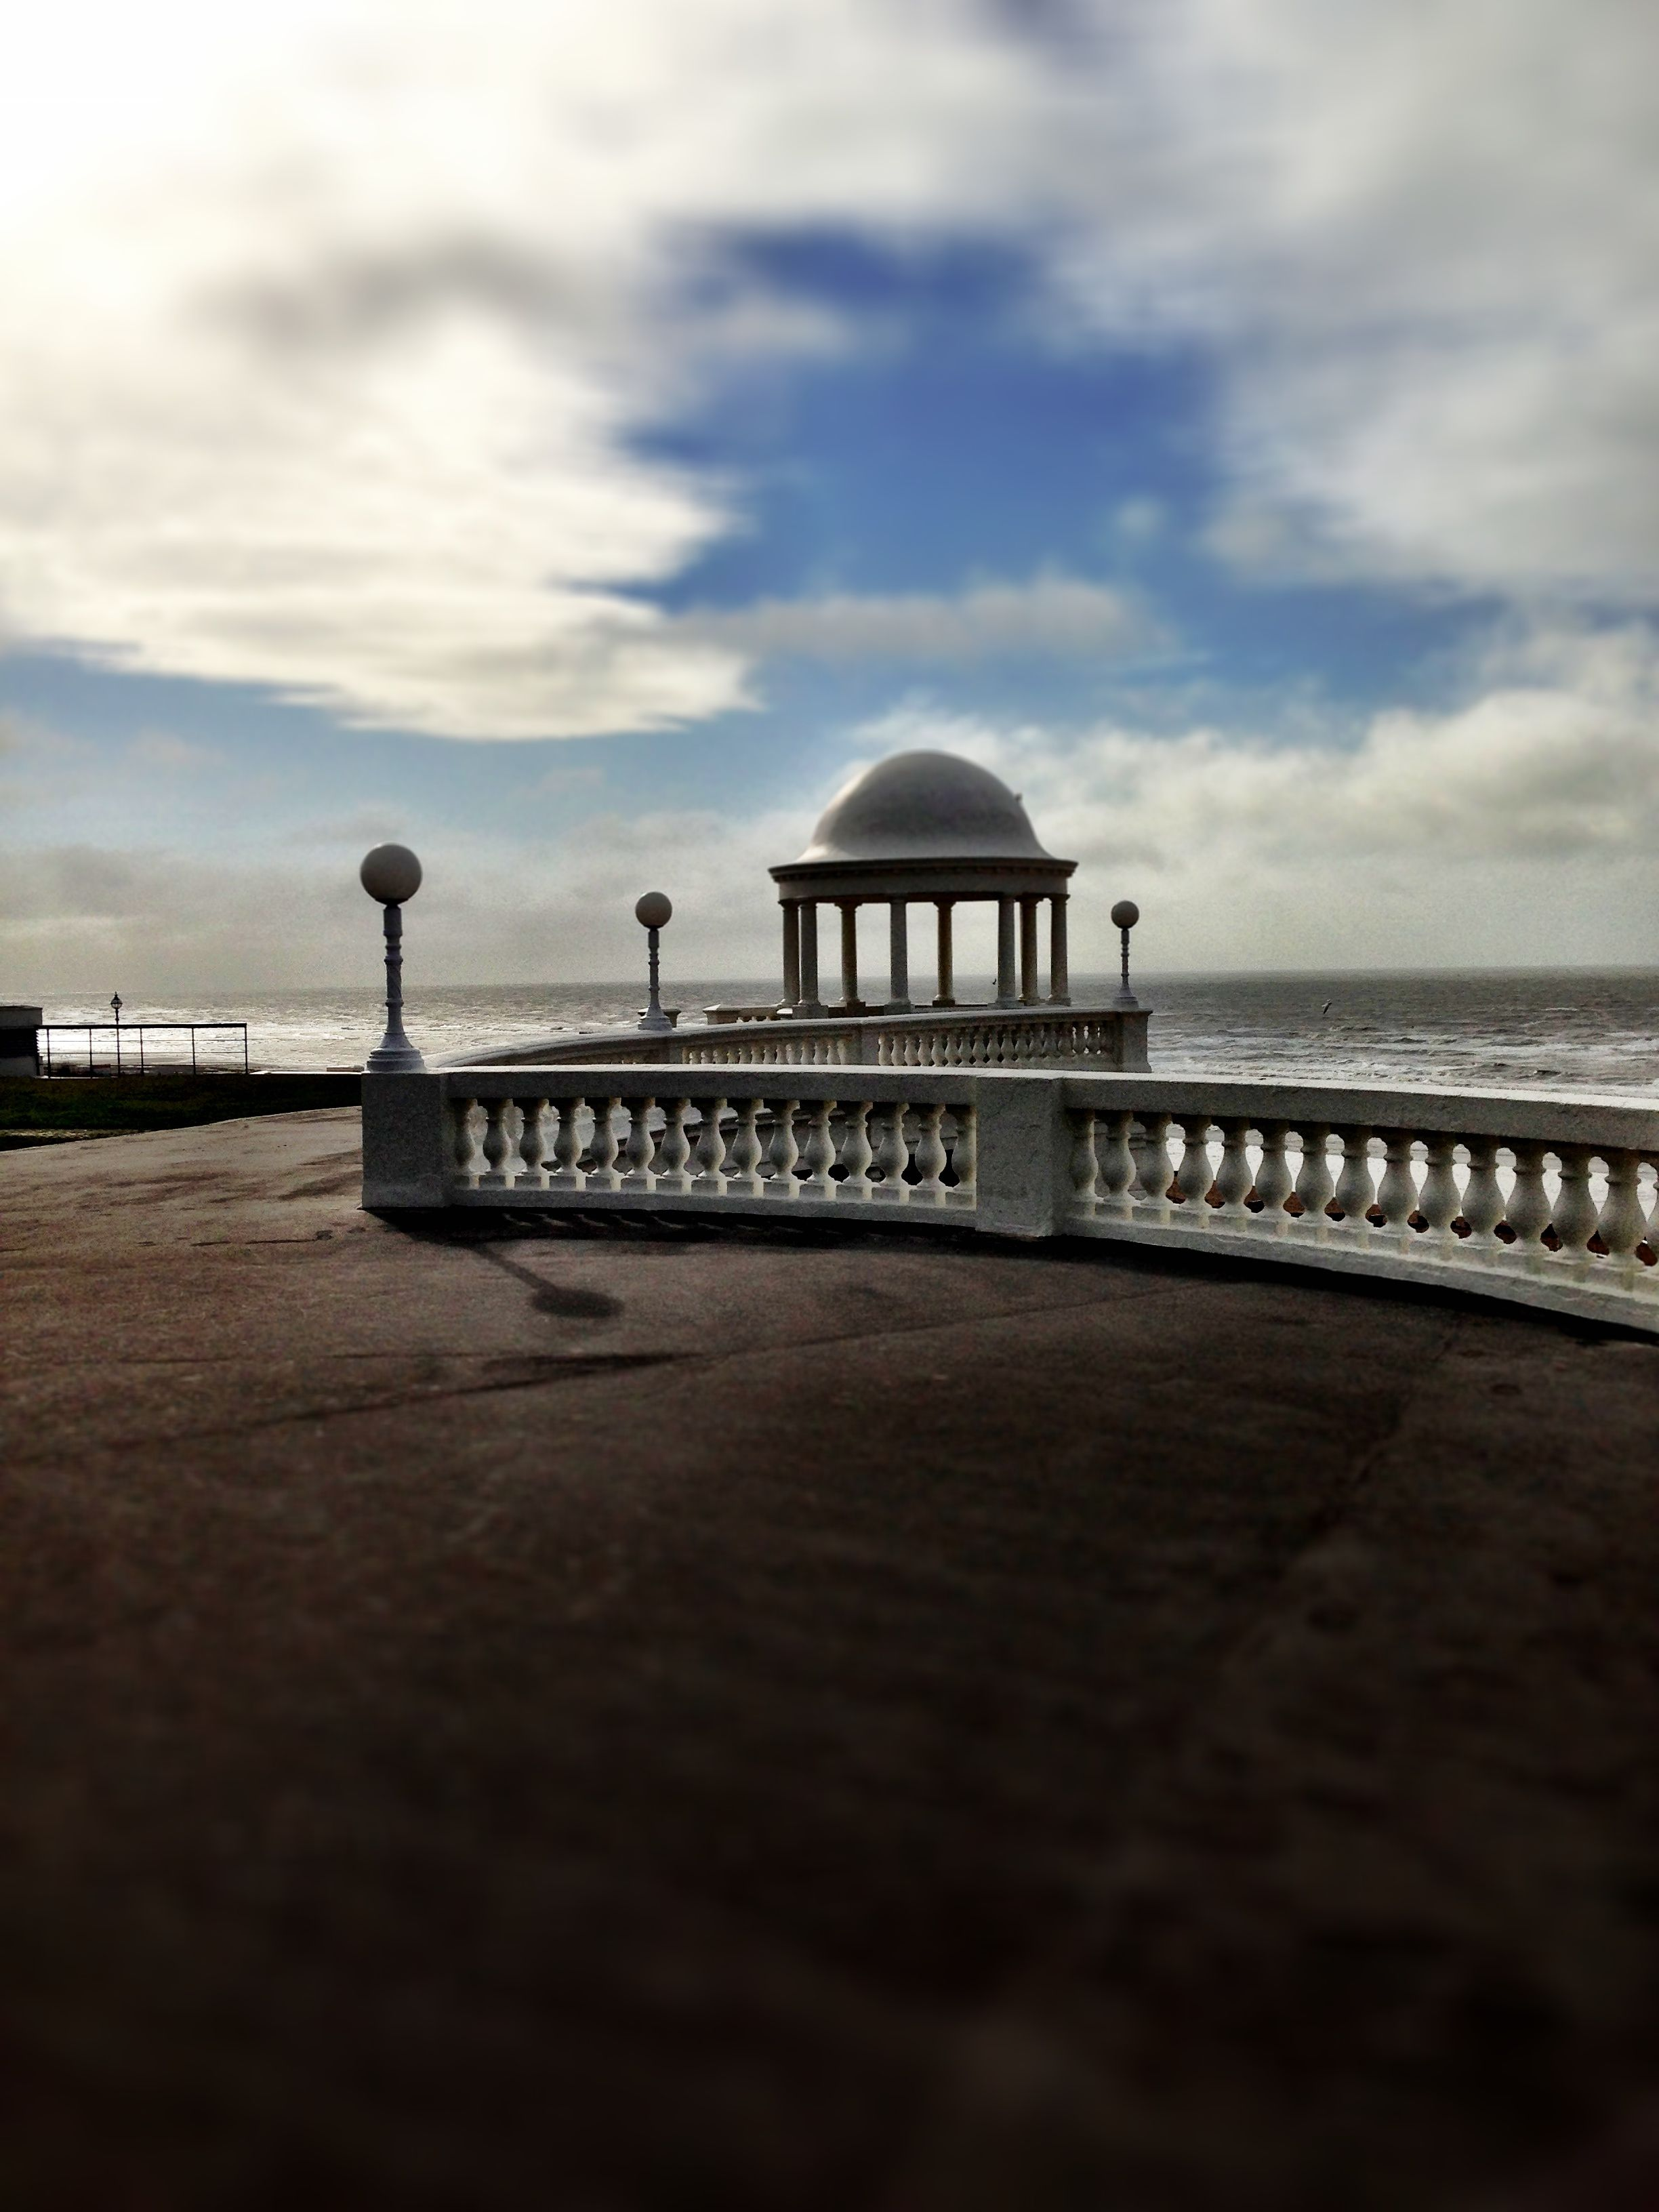 Love living by the sea. On top of the Colonnade in front of De La Warr Pavilion, Bexhill-on-Sea, East Sussex, Great Britain x